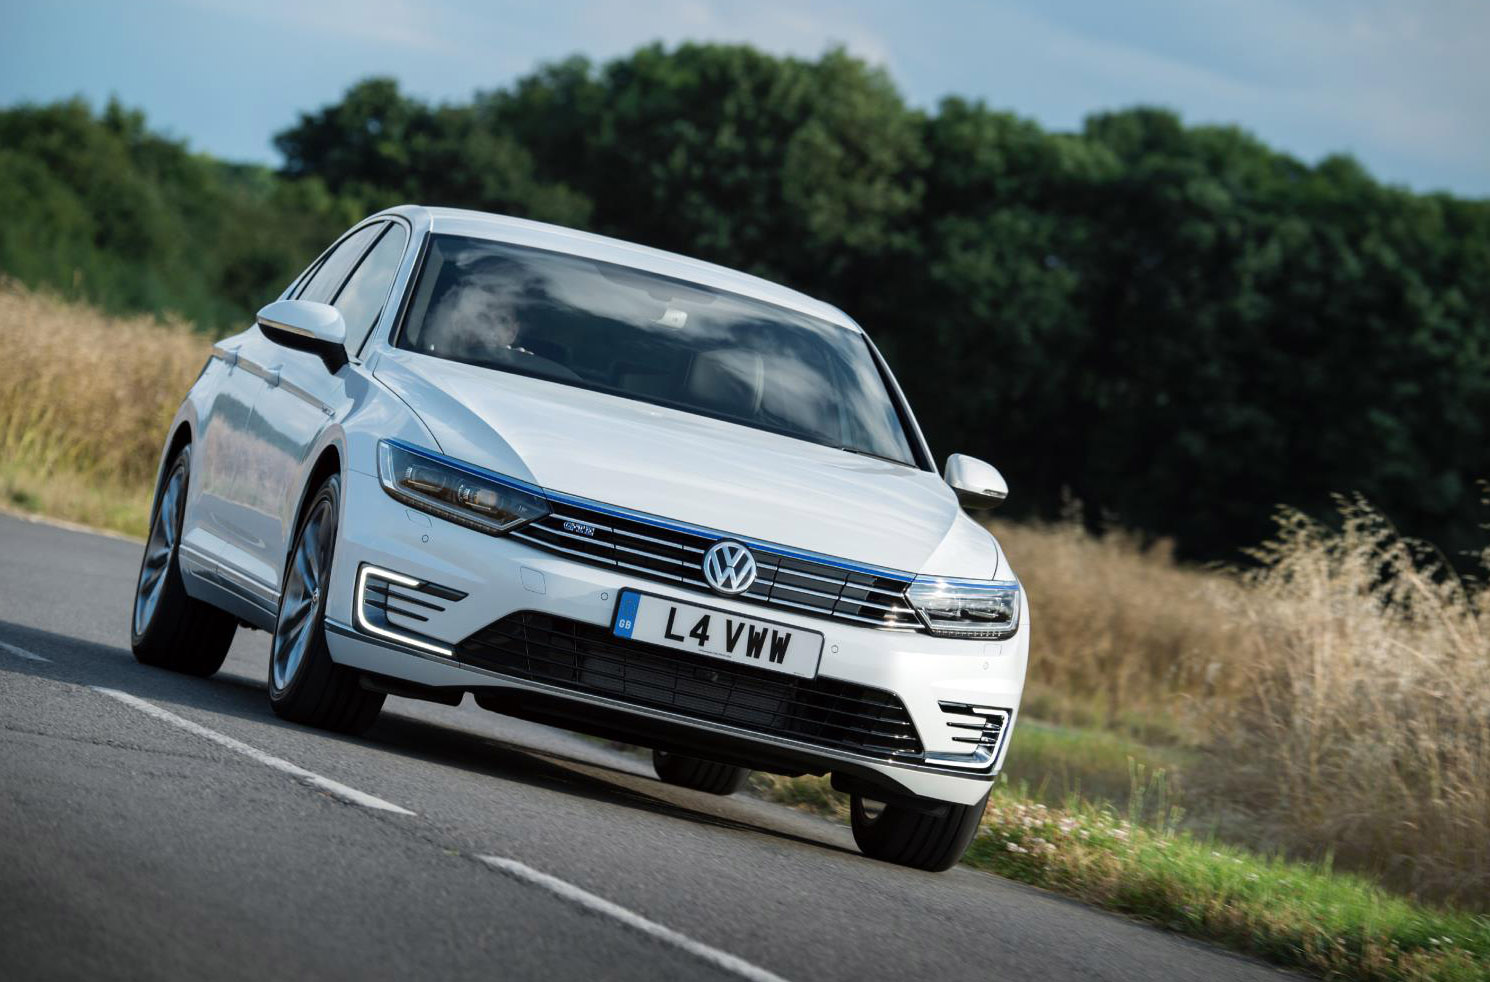 Volkswagen Passat 1 8 TSI review - price, specs and 0-60